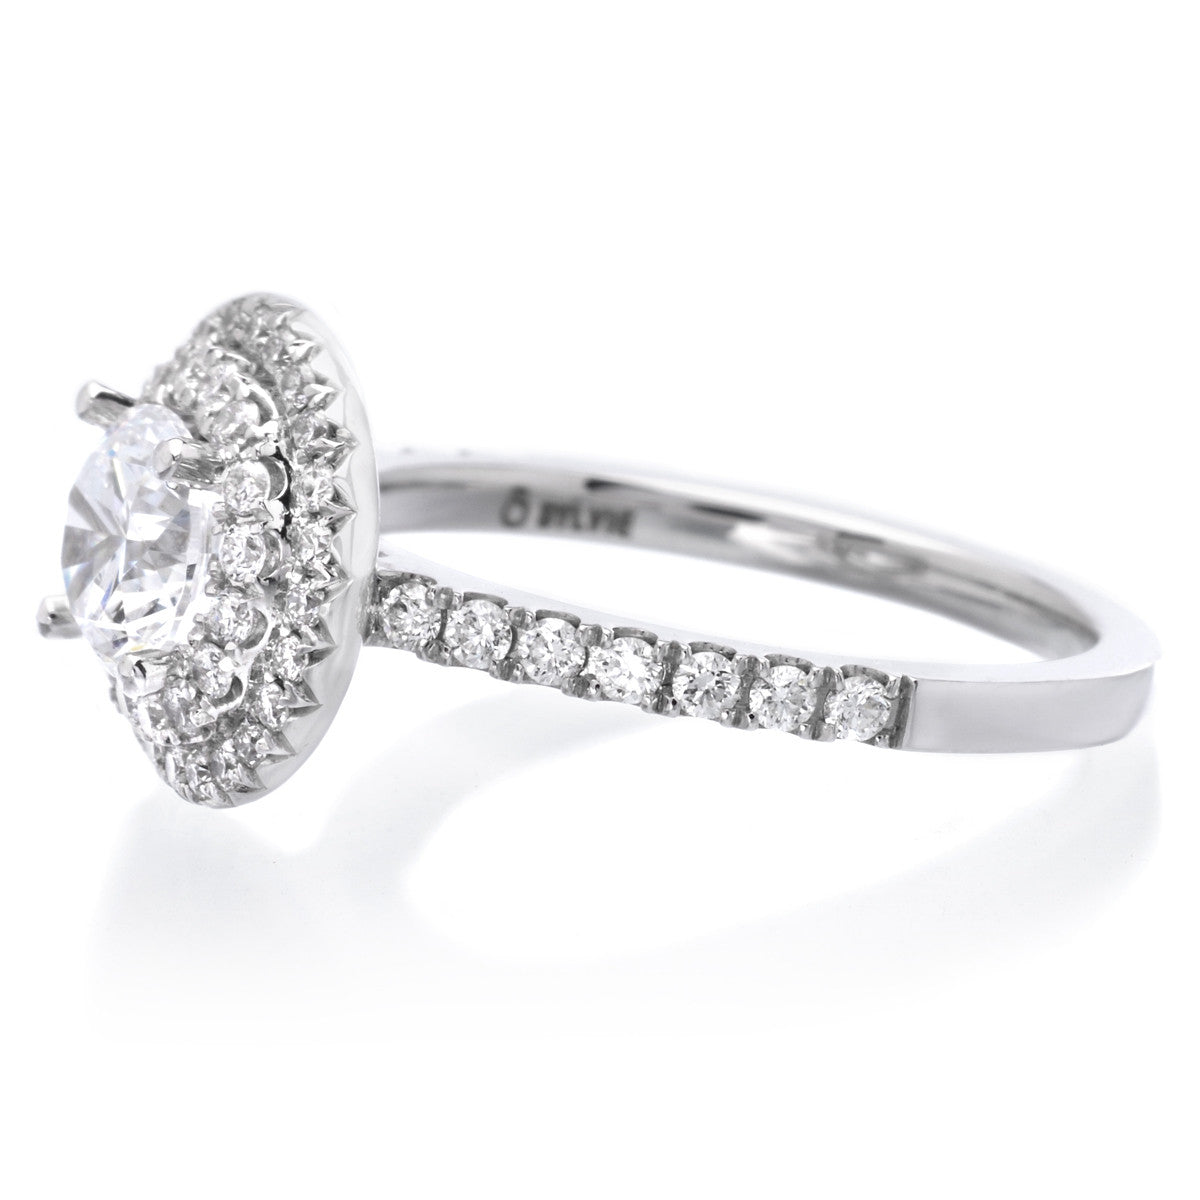 14K White Gold Classic Double-Halo Engagement Ring Setting